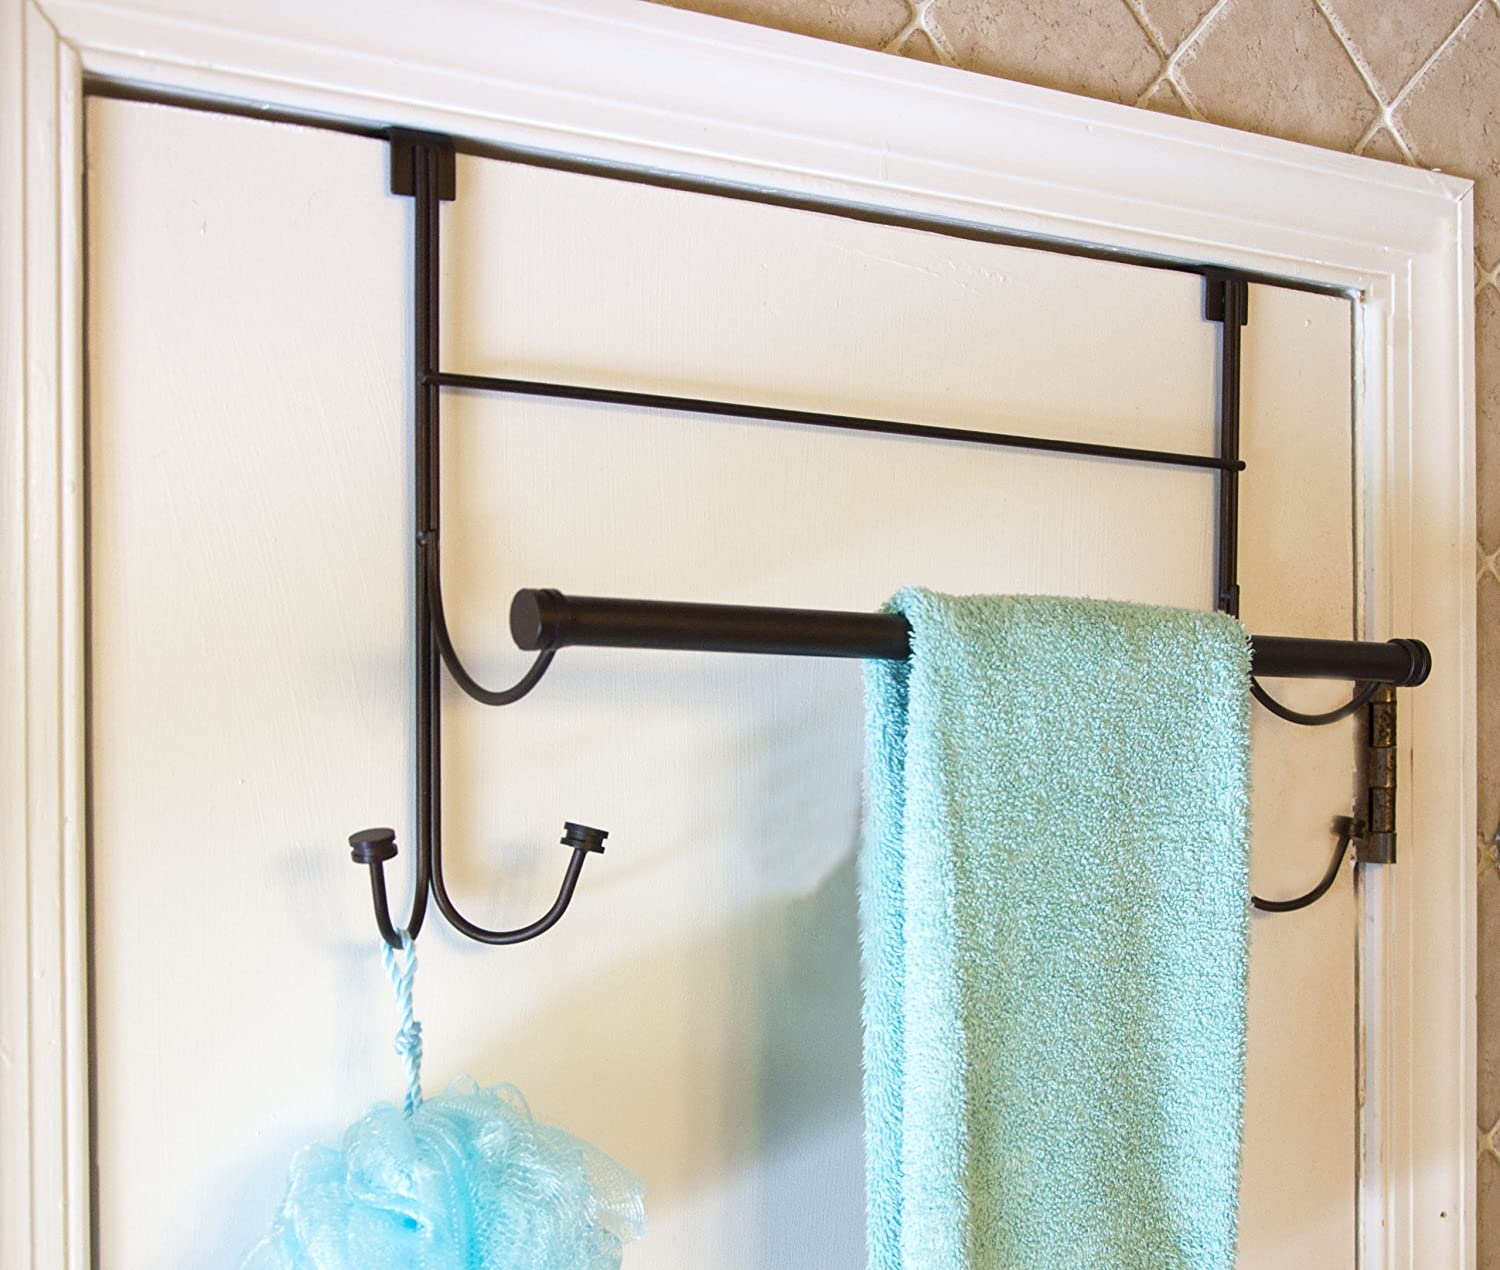 Amazon.com Bathsense Over the Door Towel Rack with 4 Hooks Oil Rubbed Bronze Home u0026 Kitchen & Amazon.com: Bathsense Over the Door Towel Rack with 4 Hooks Oil ... pezcame.com